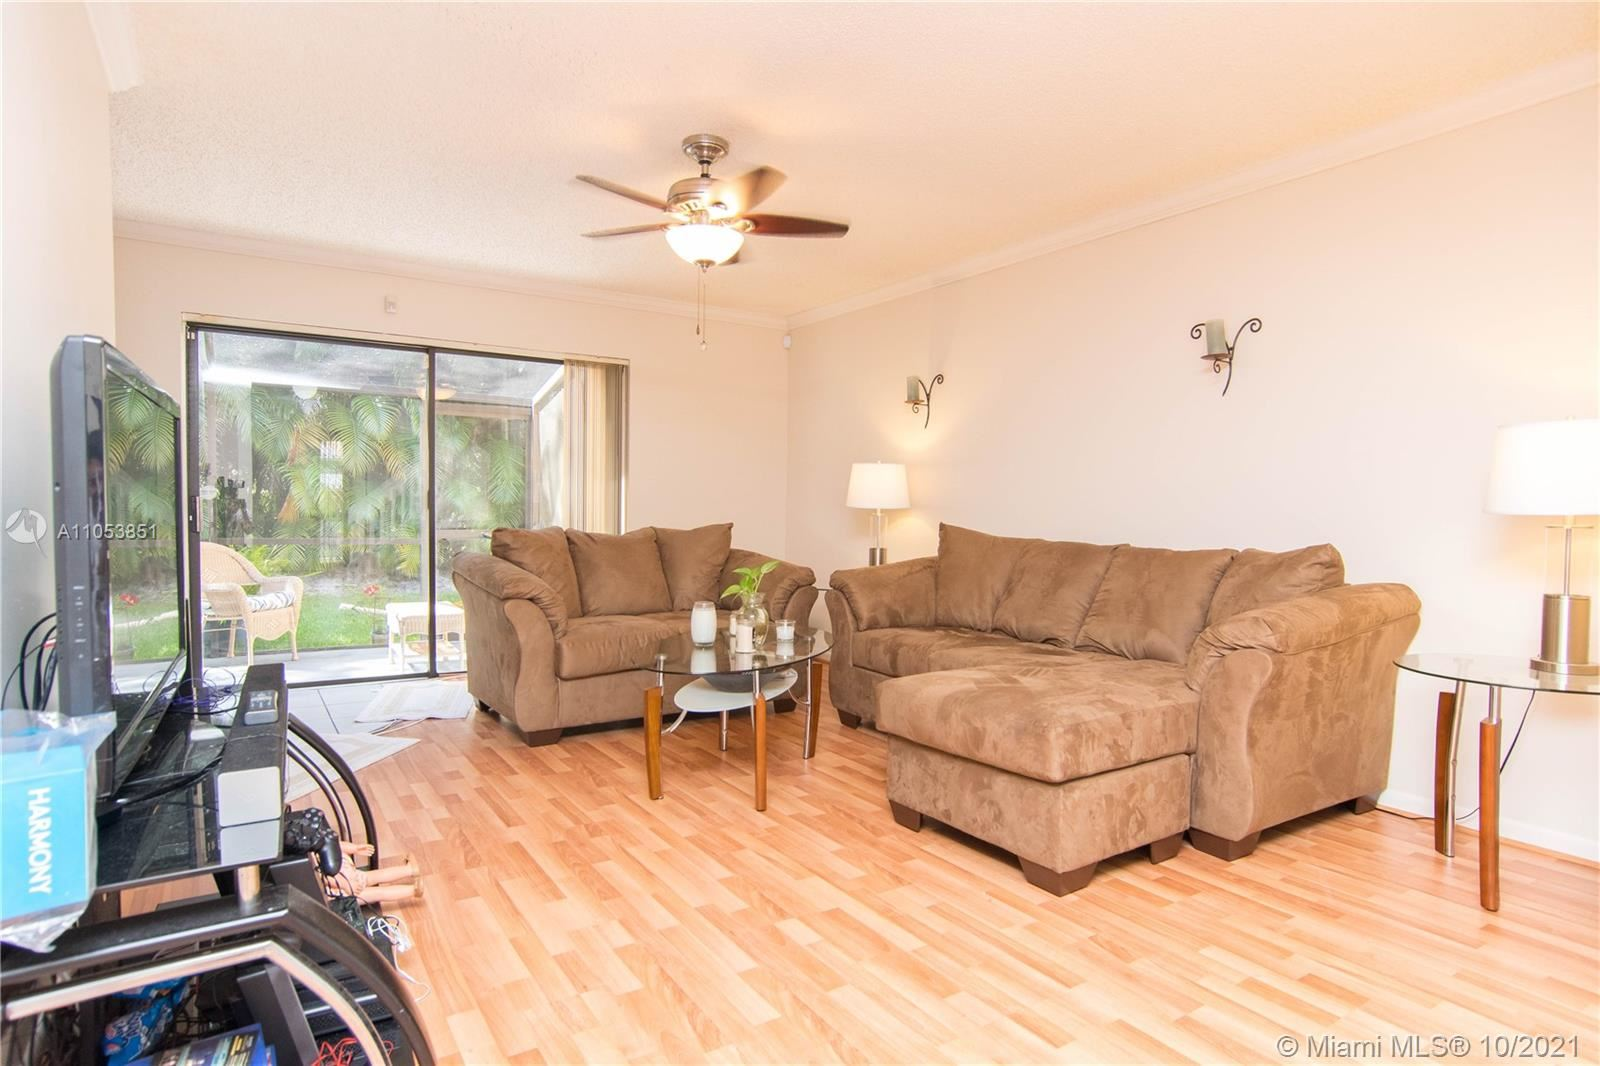 2257 NW 45th Ave, Coconut Creek, FL 33066 - #: A11053851